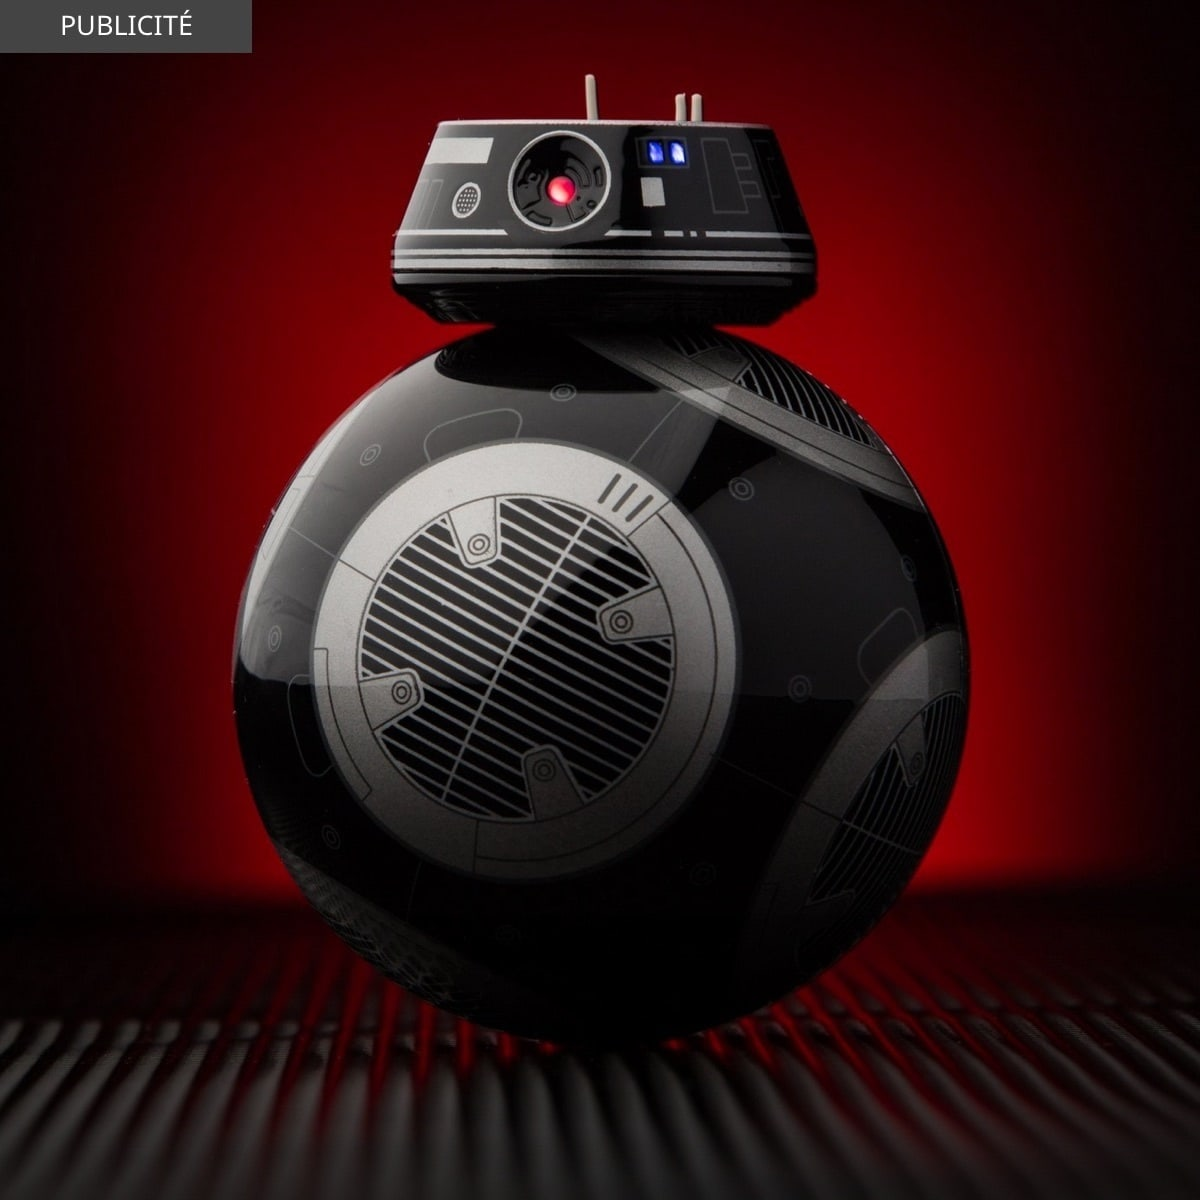 FR - Star Wars The Last Jedi - Featured Product - BB9E Sphero - Flex Grid Object - Square